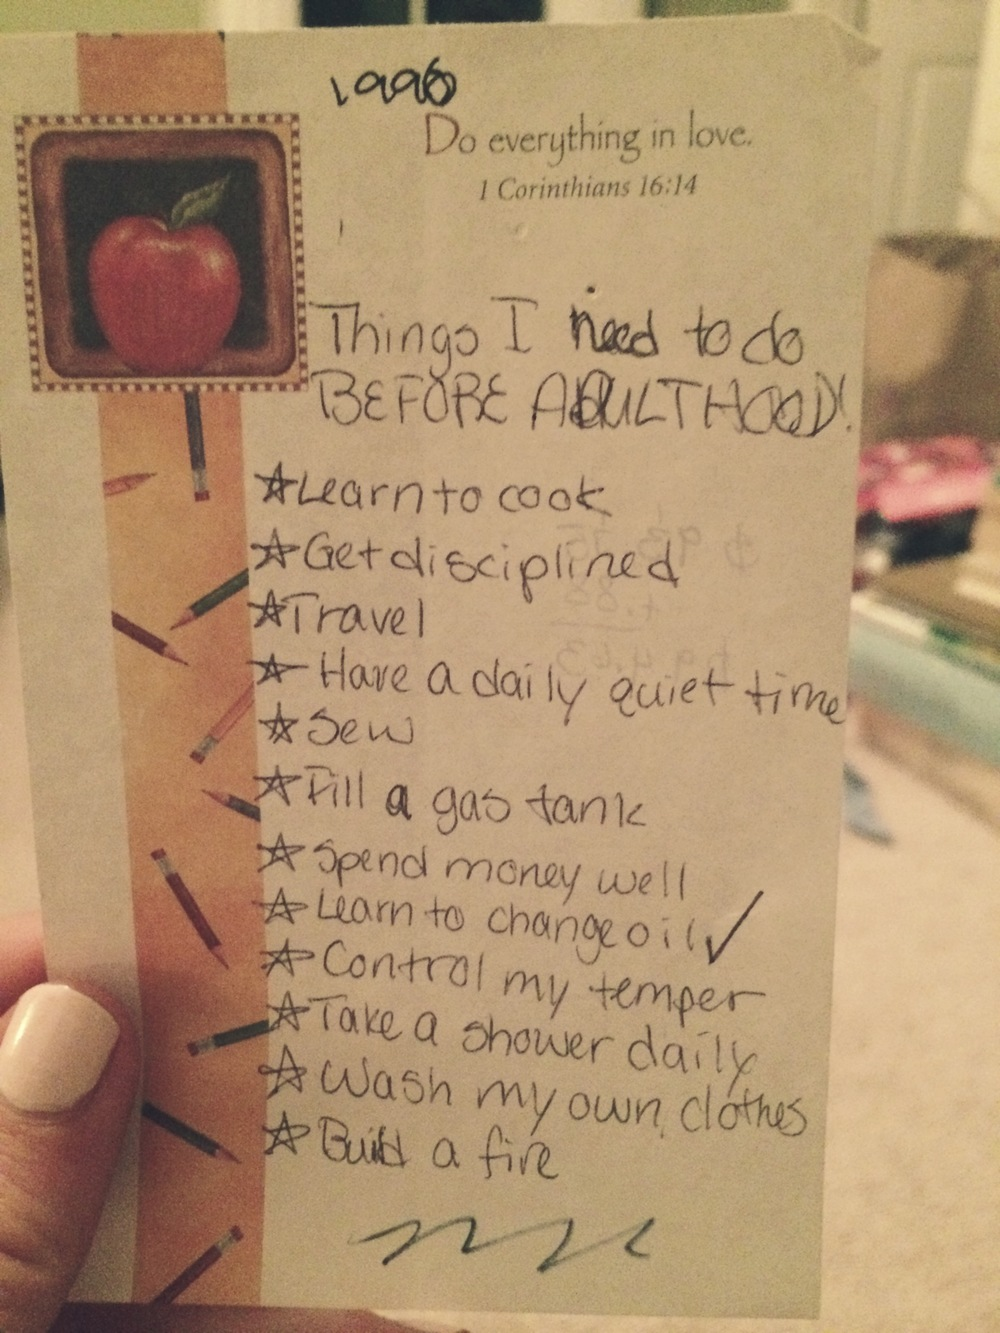 Found this while going through some old stuff from childhood. These were my life goals at age 10. I love how the only thing with a check mark is learning to change the oil, which I definitely don't remember how to do.